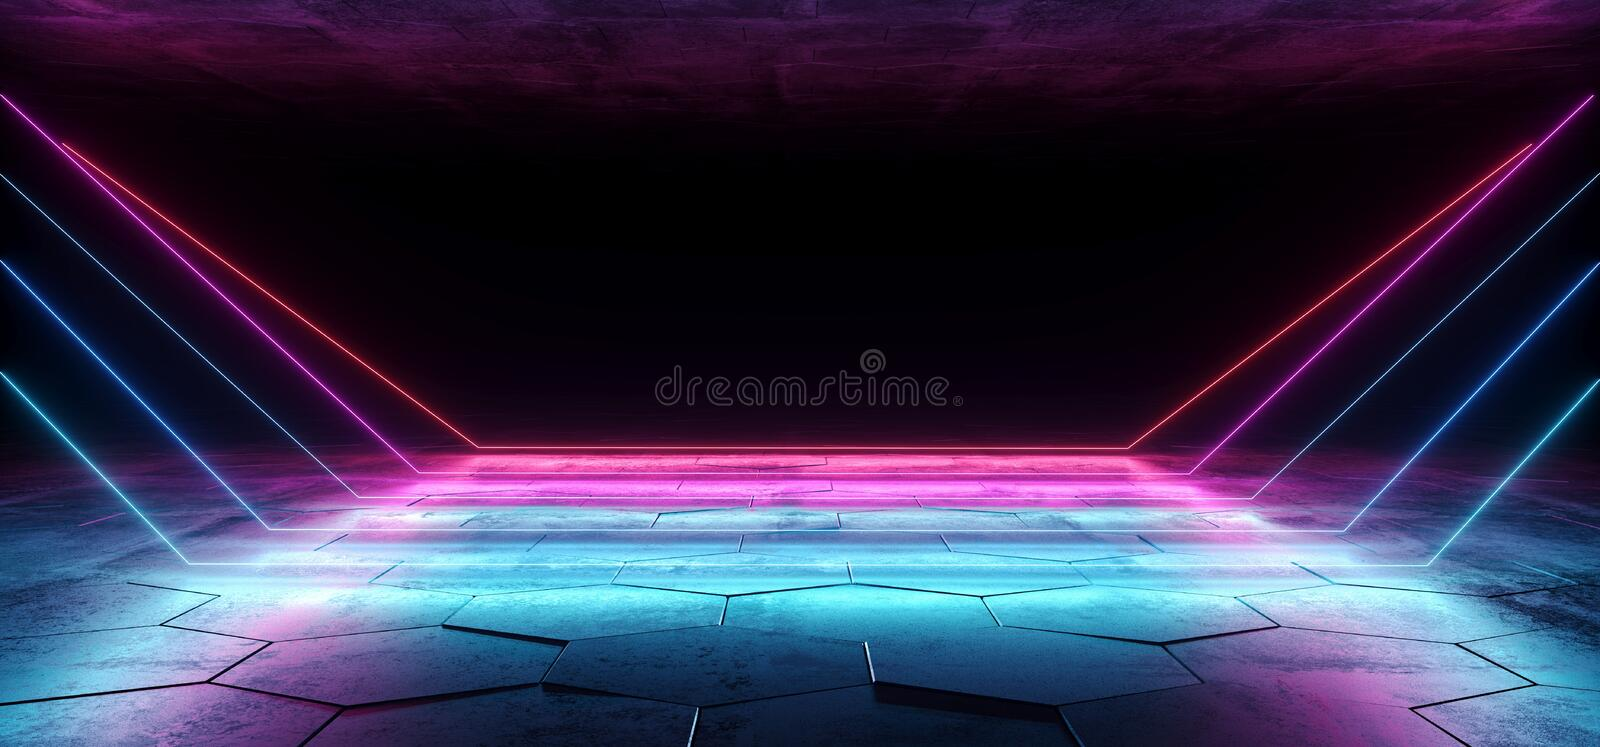 Abstract Neon Sci Fi Laser Led Pink Blue Purple Glowing Futuristic Lines In Dark Empty Grunge Concrete Hexagonal Floor Room Empty vector illustration